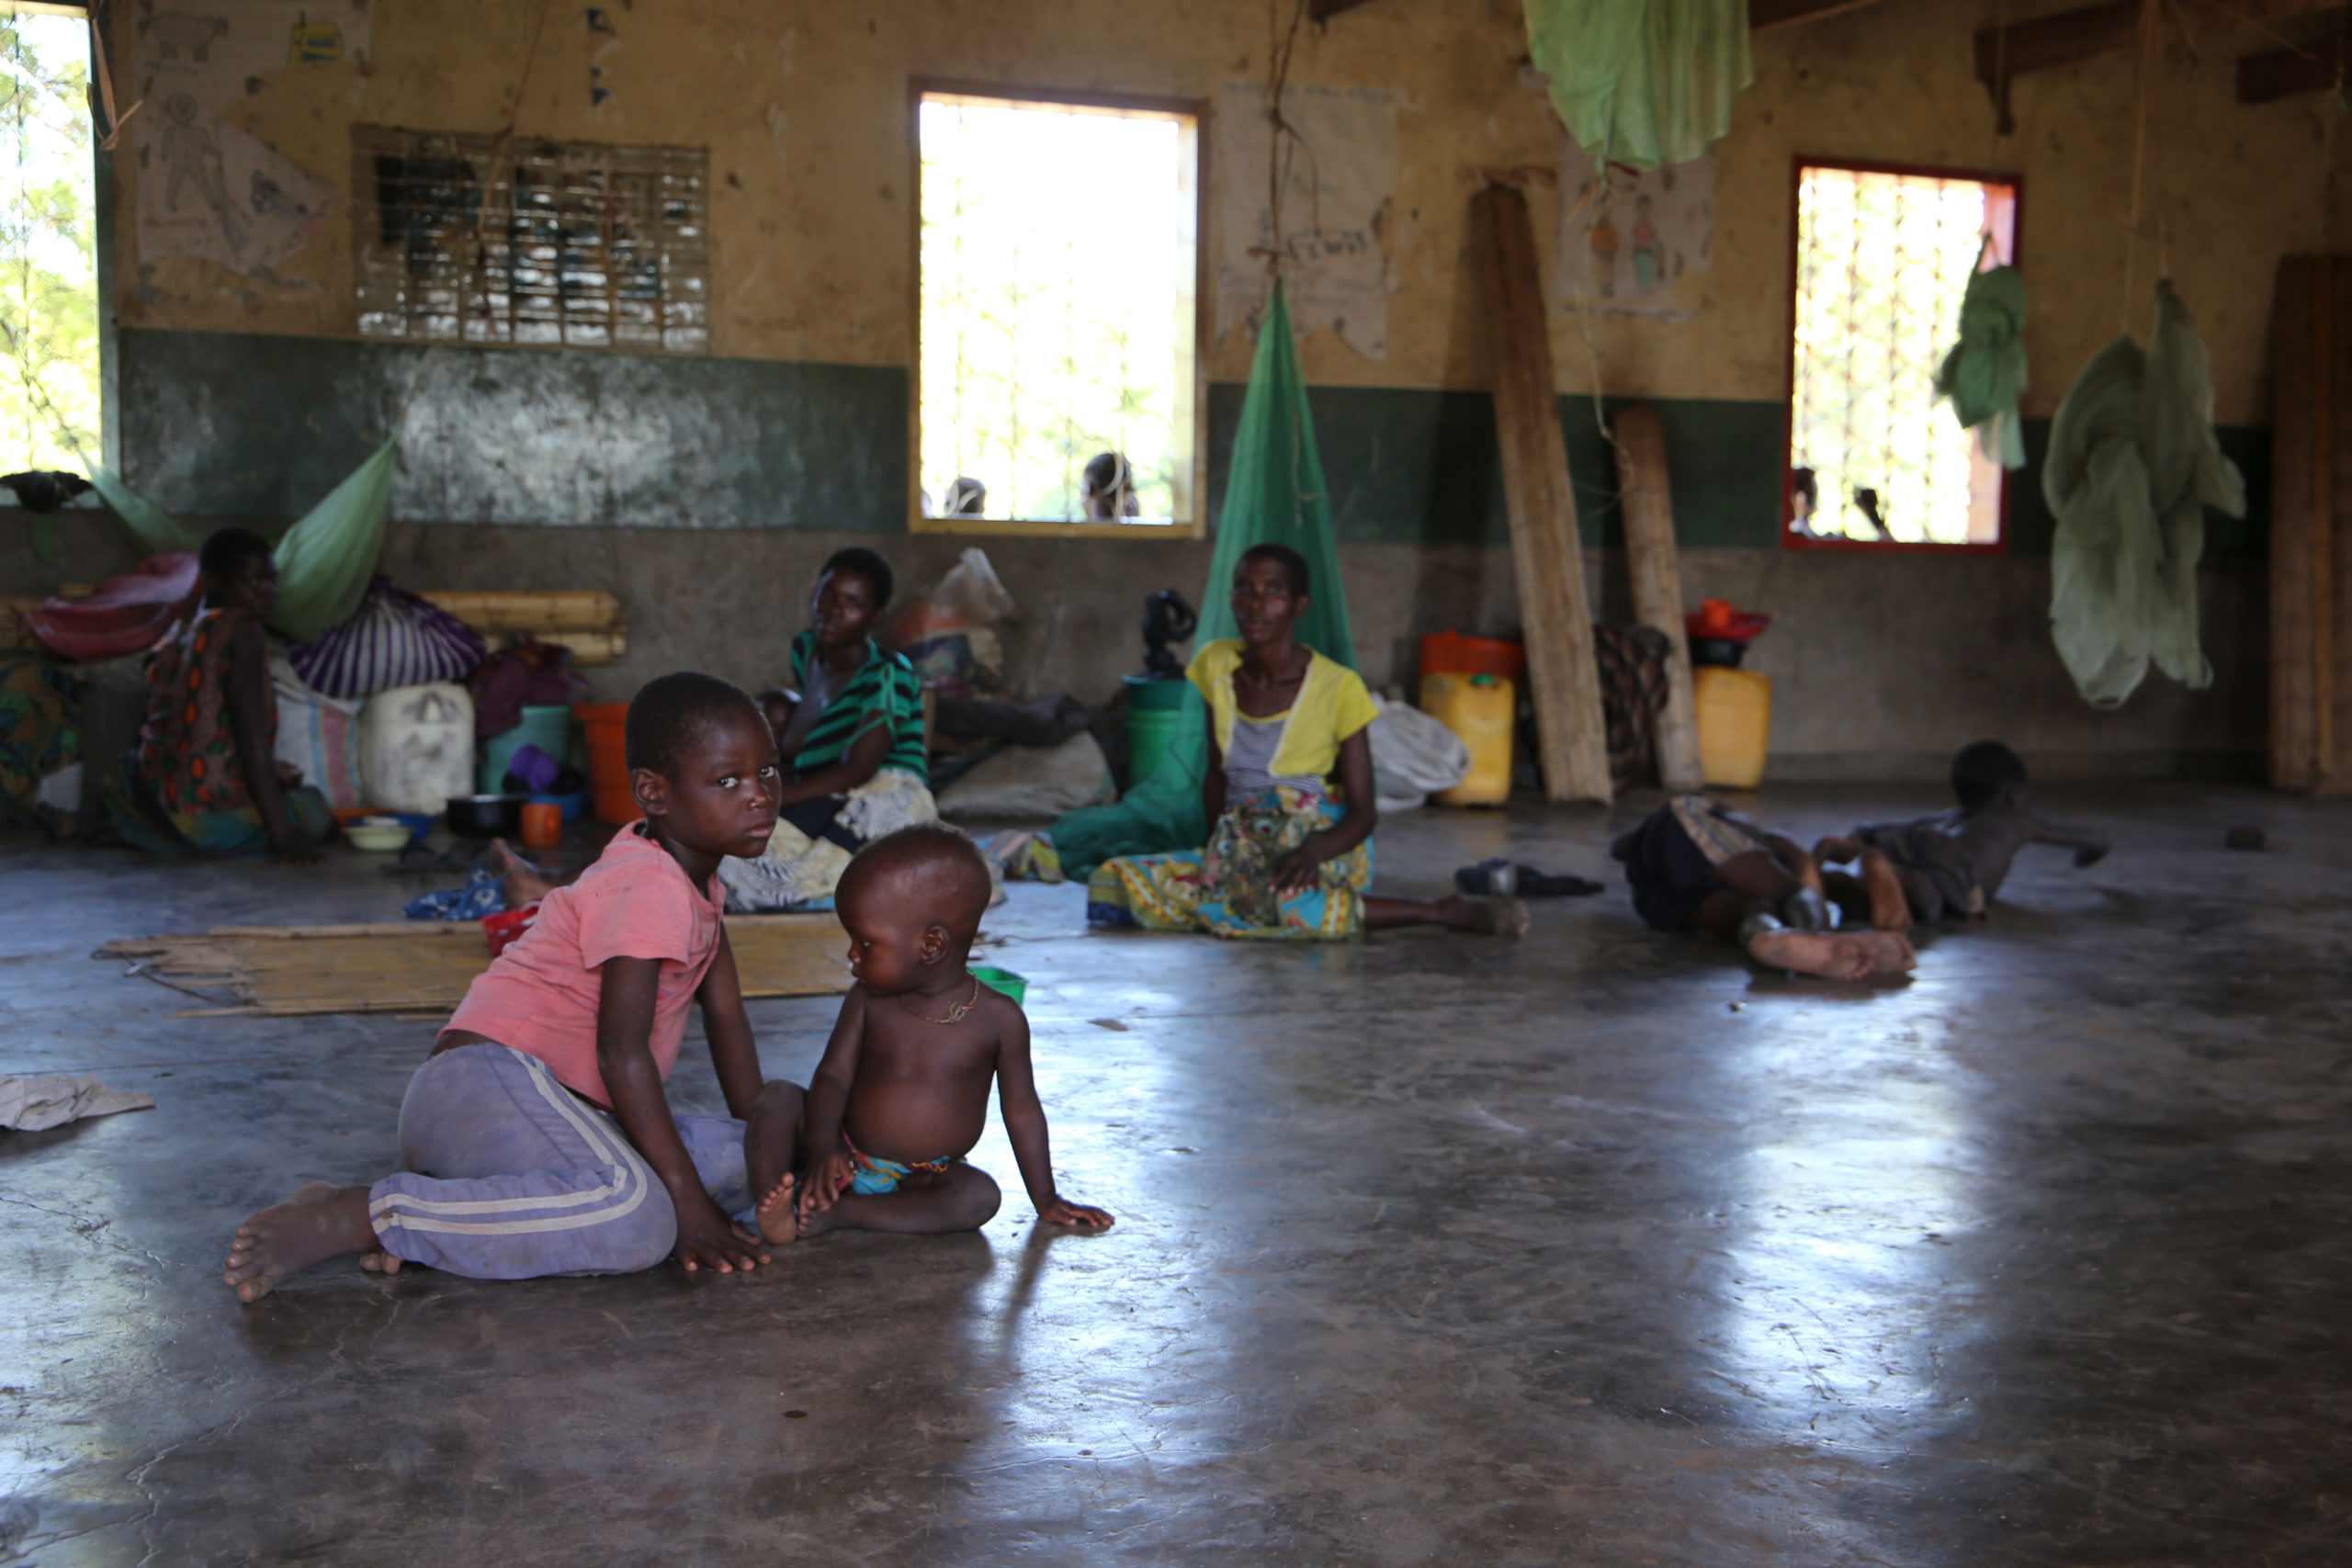 Foreground: two children sit on the concrete ground inside a school being used as an emergency shelter. Adults and other children can be seen in the background